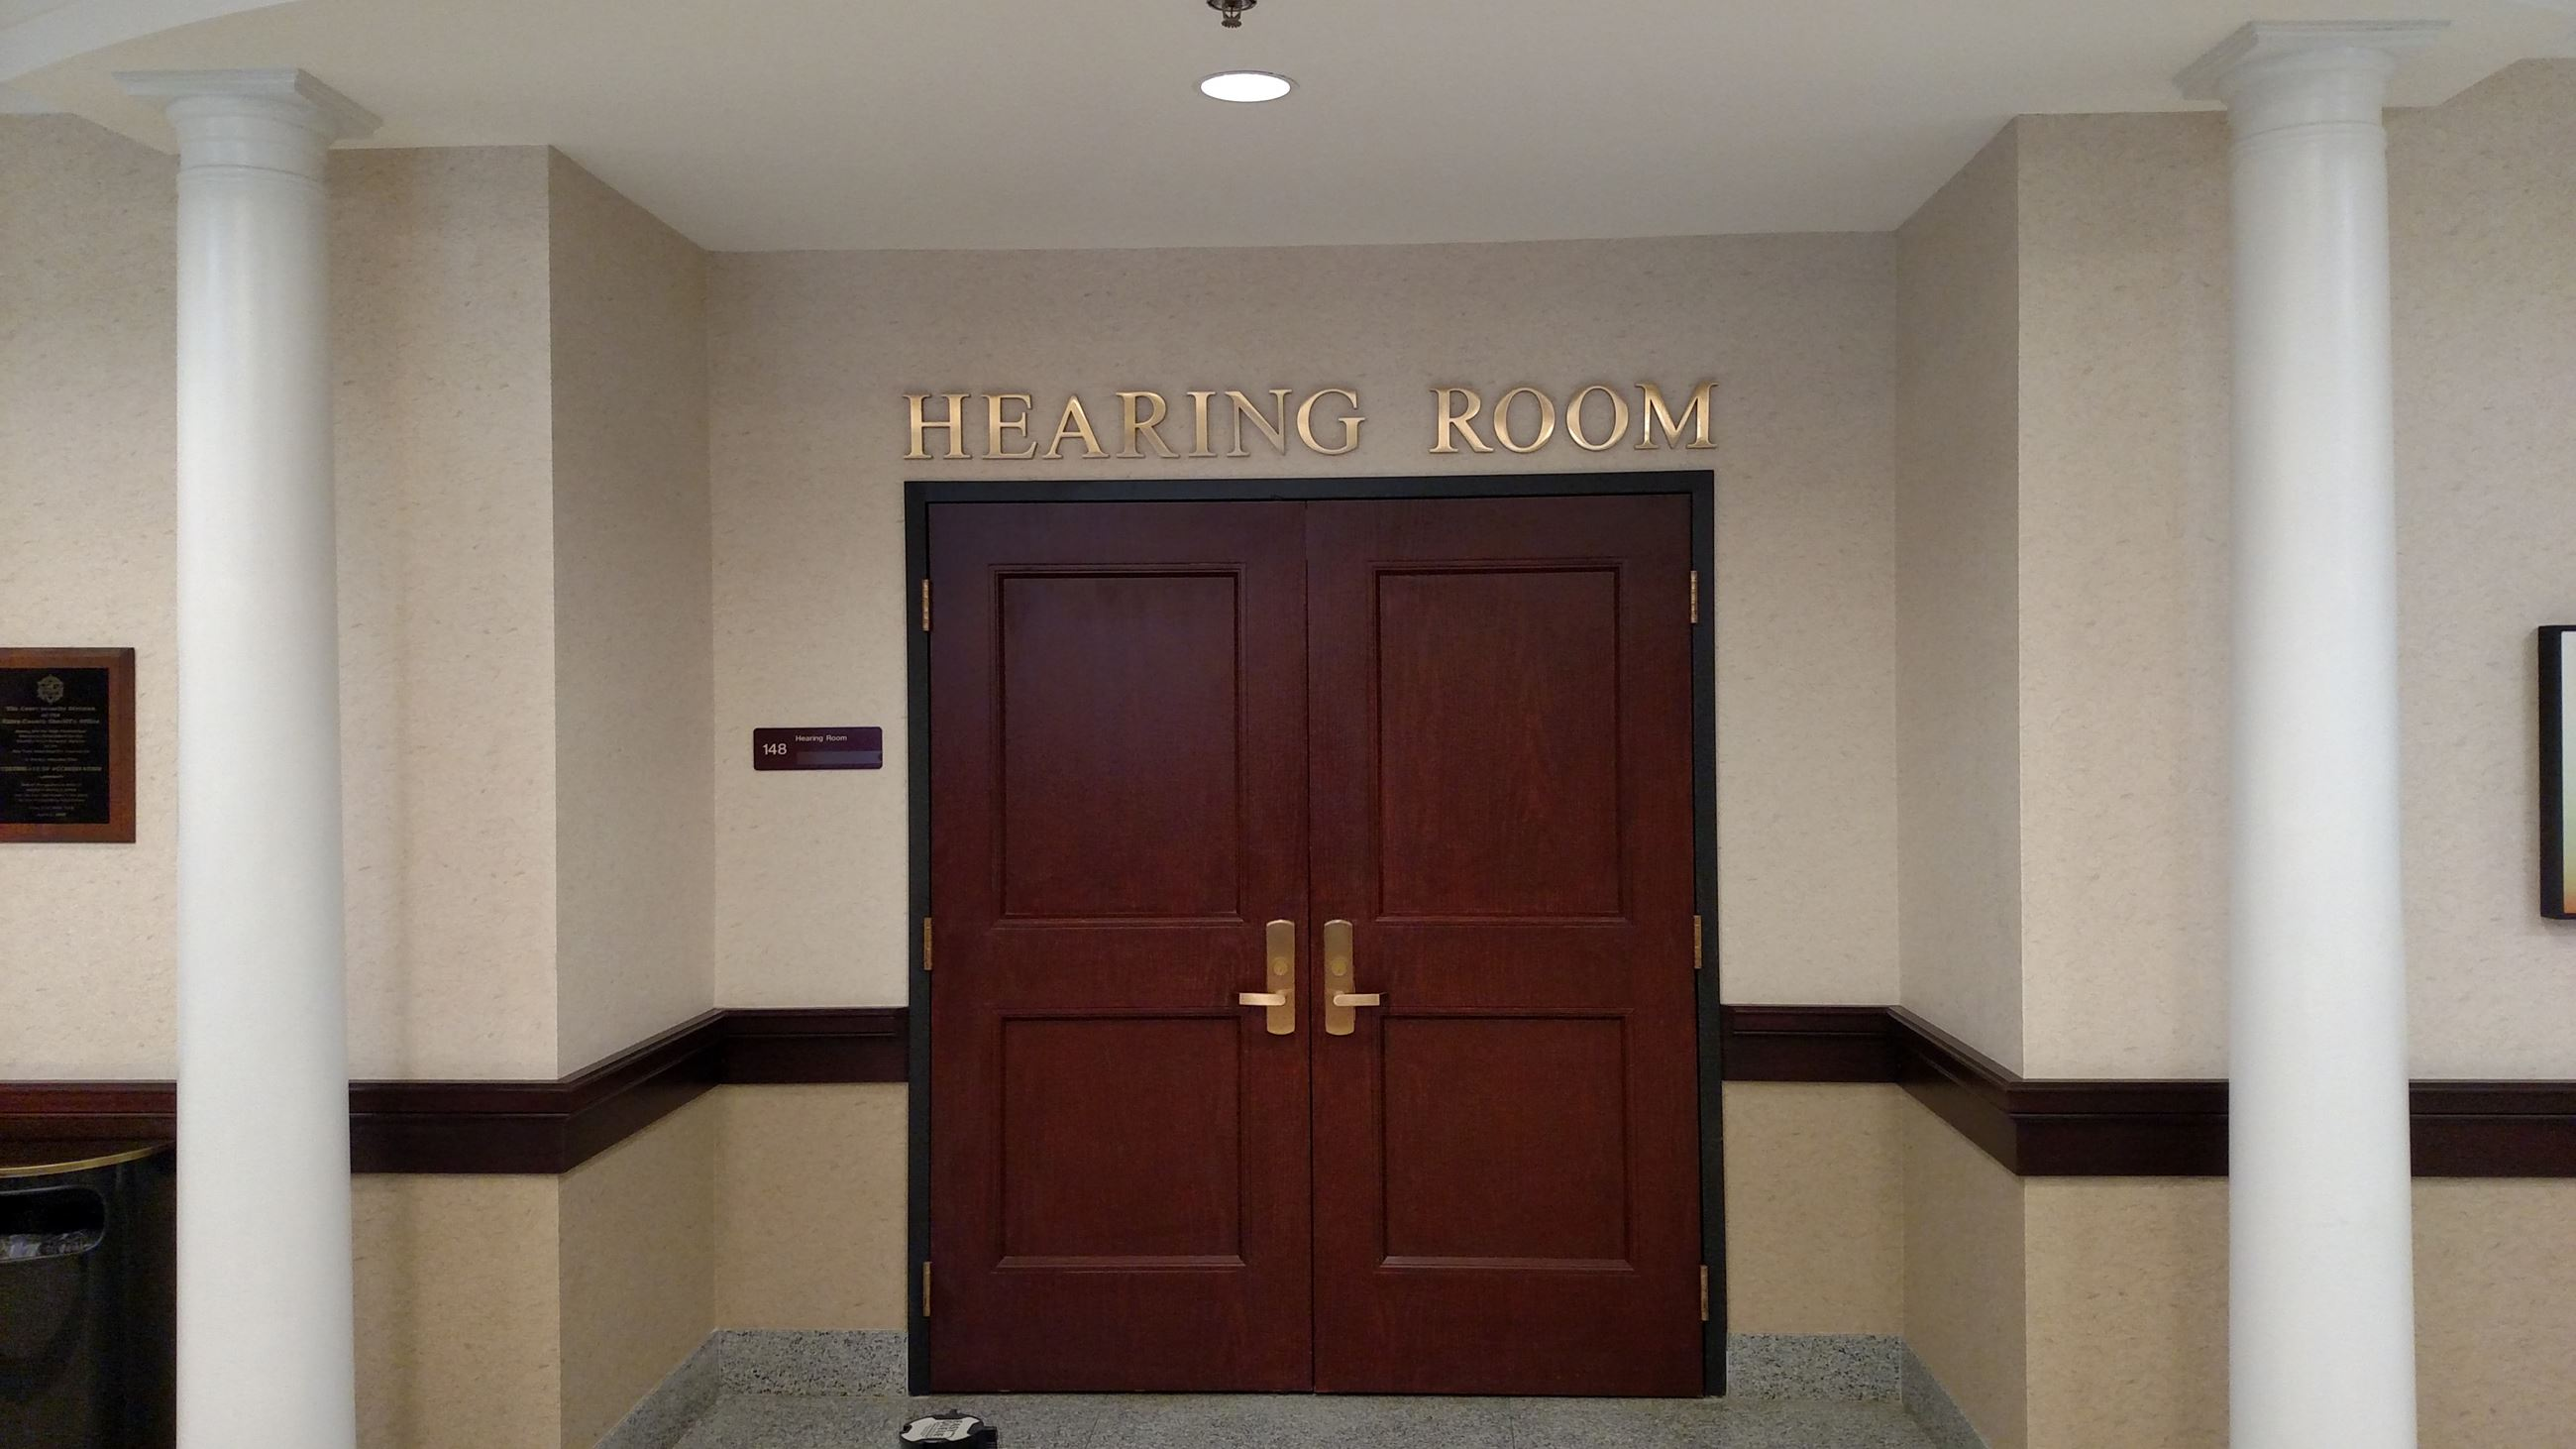 Hearing Room Entrance